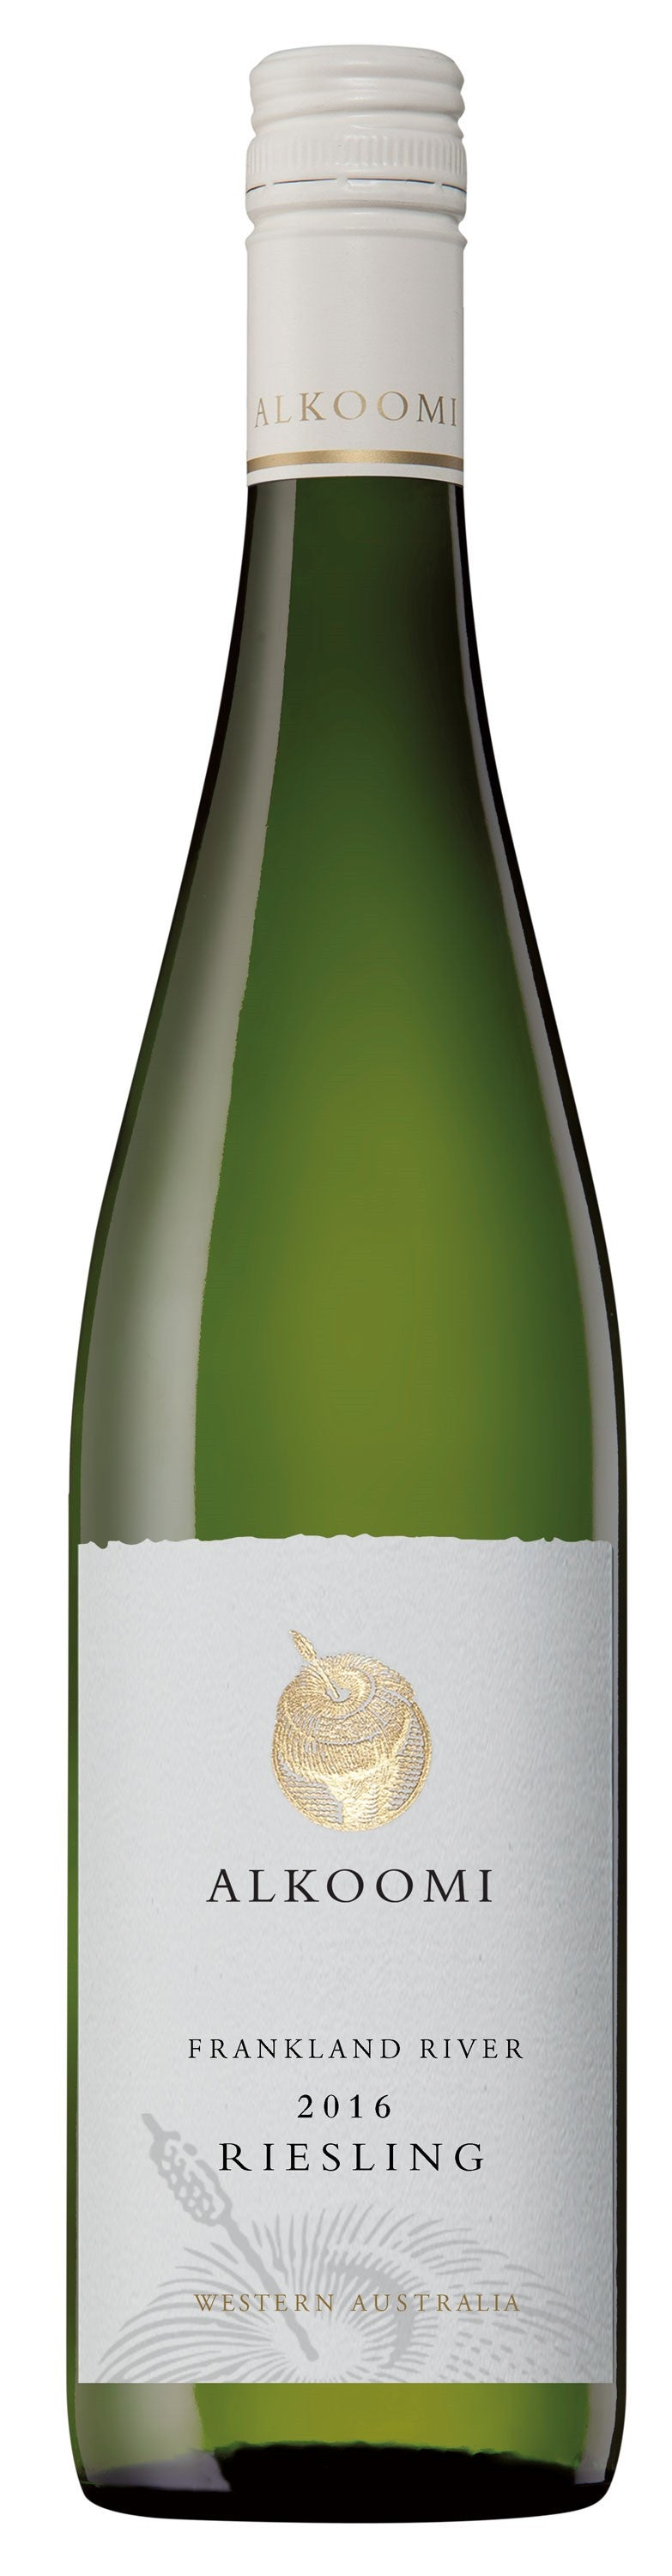 Alkoomi White Label Riesling 2016